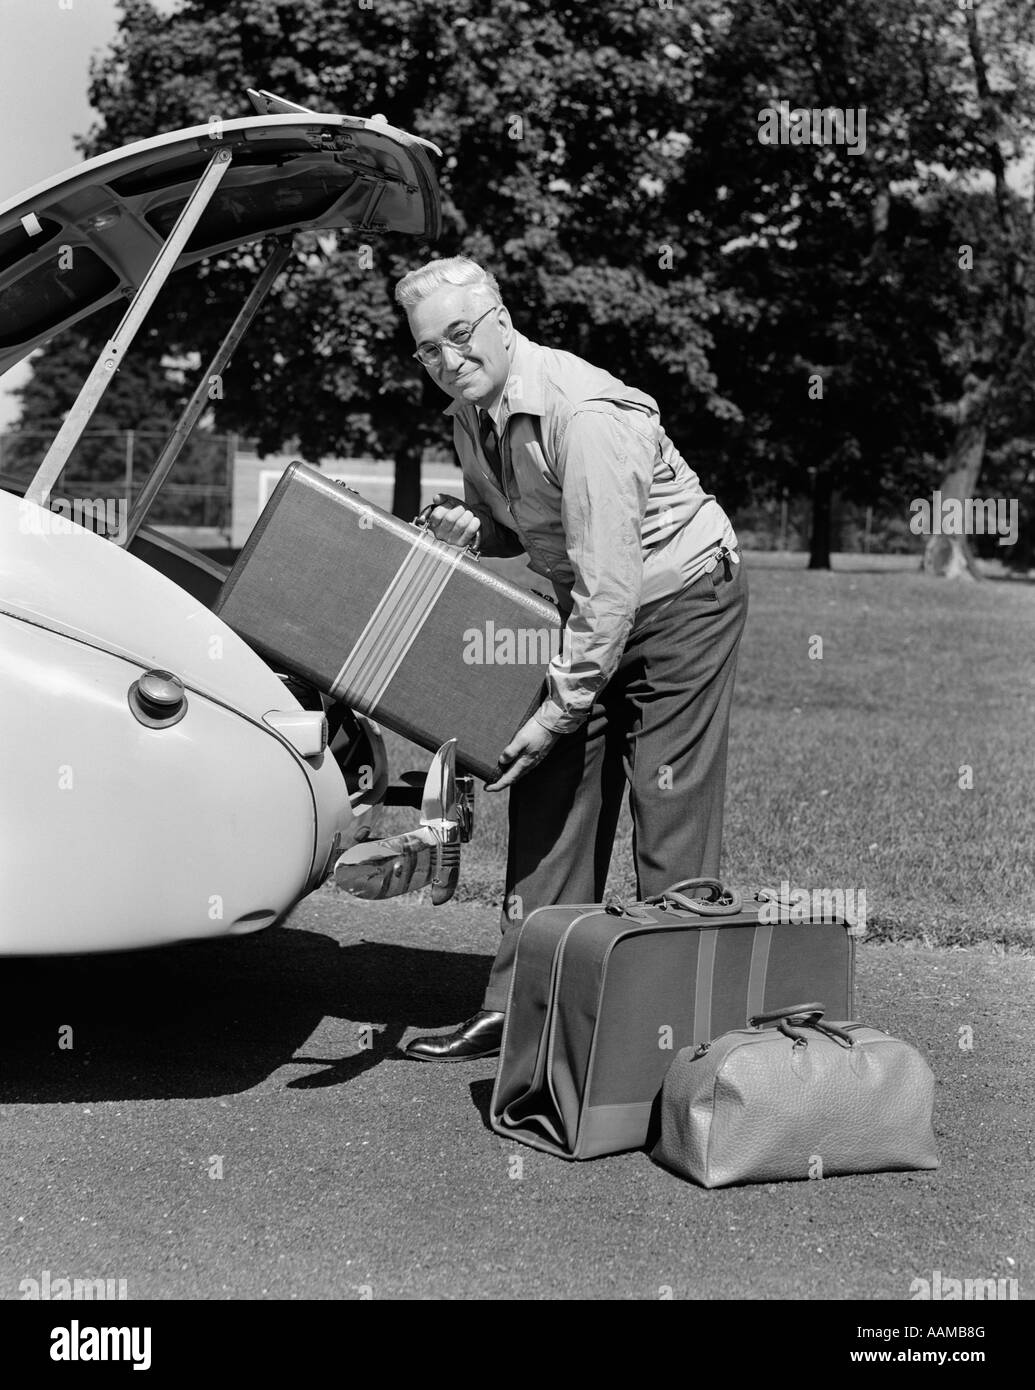 1940s MAN PACKING CAR TRUNK LUGGAGE TRIP ELDERLY - Stock Image